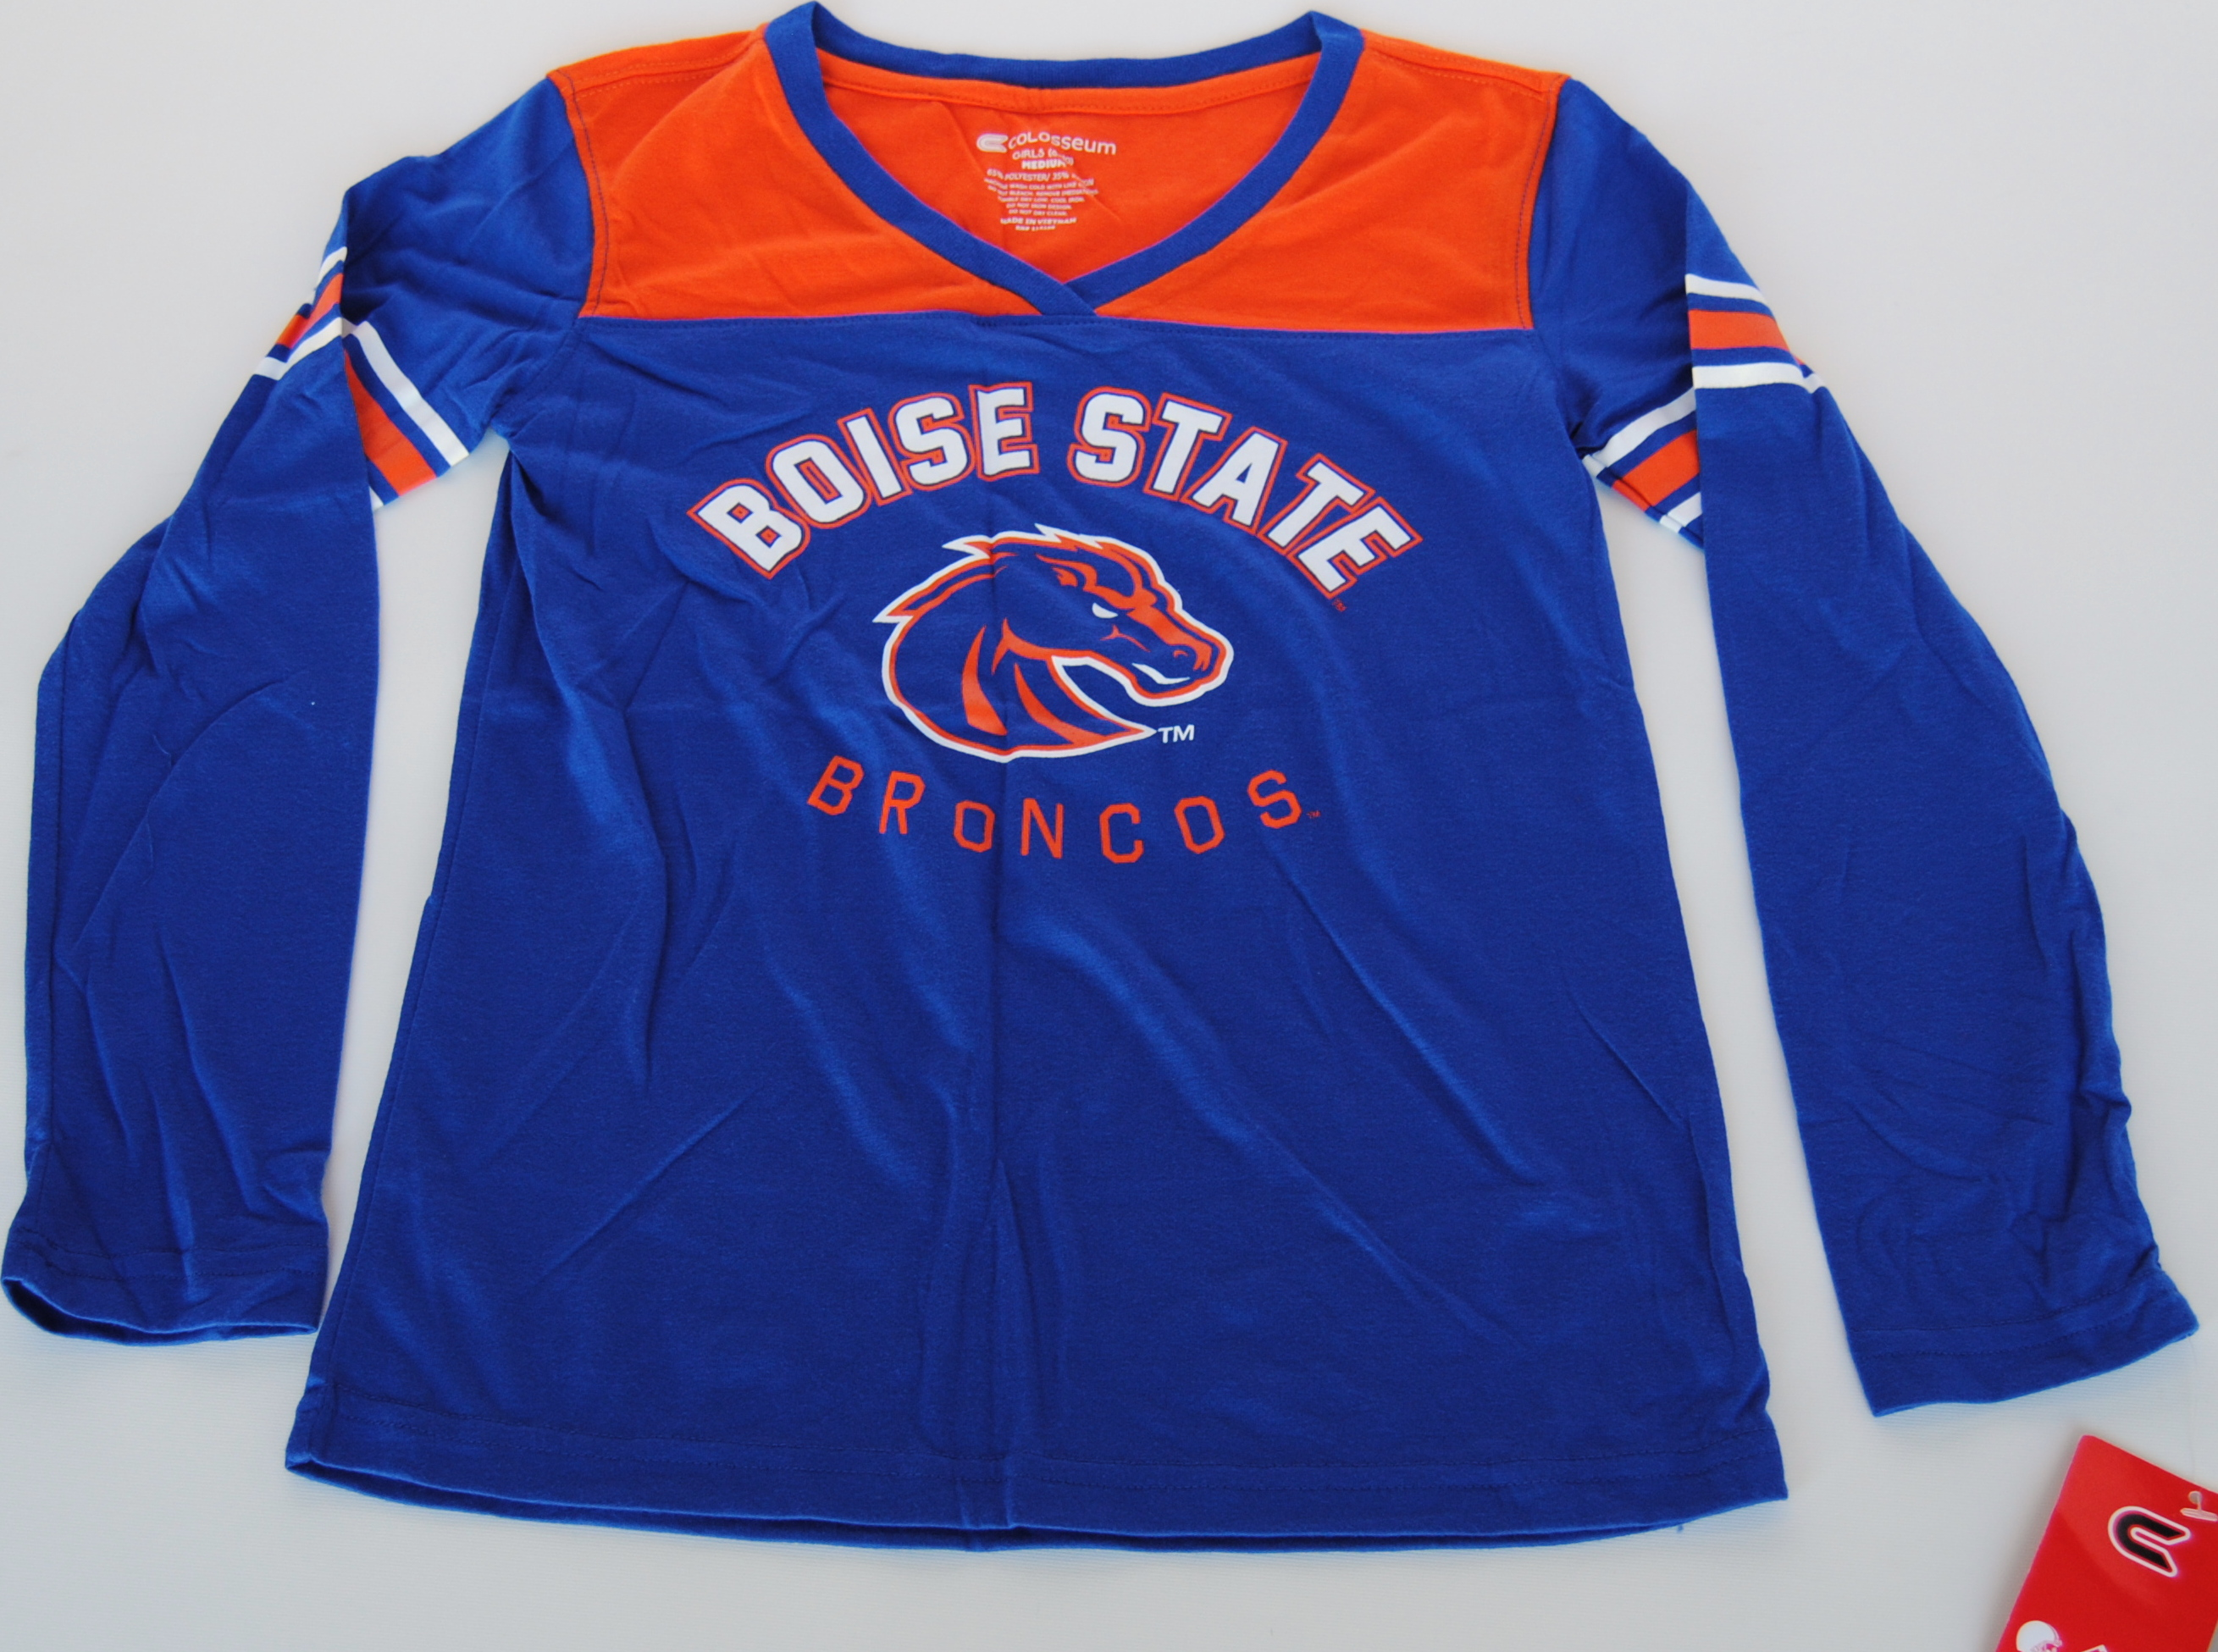 Colosseum Athletics Boise State Broncos Colosseum Blue Orange Womens Long Sleeve T-Shirt (M) at Sears.com